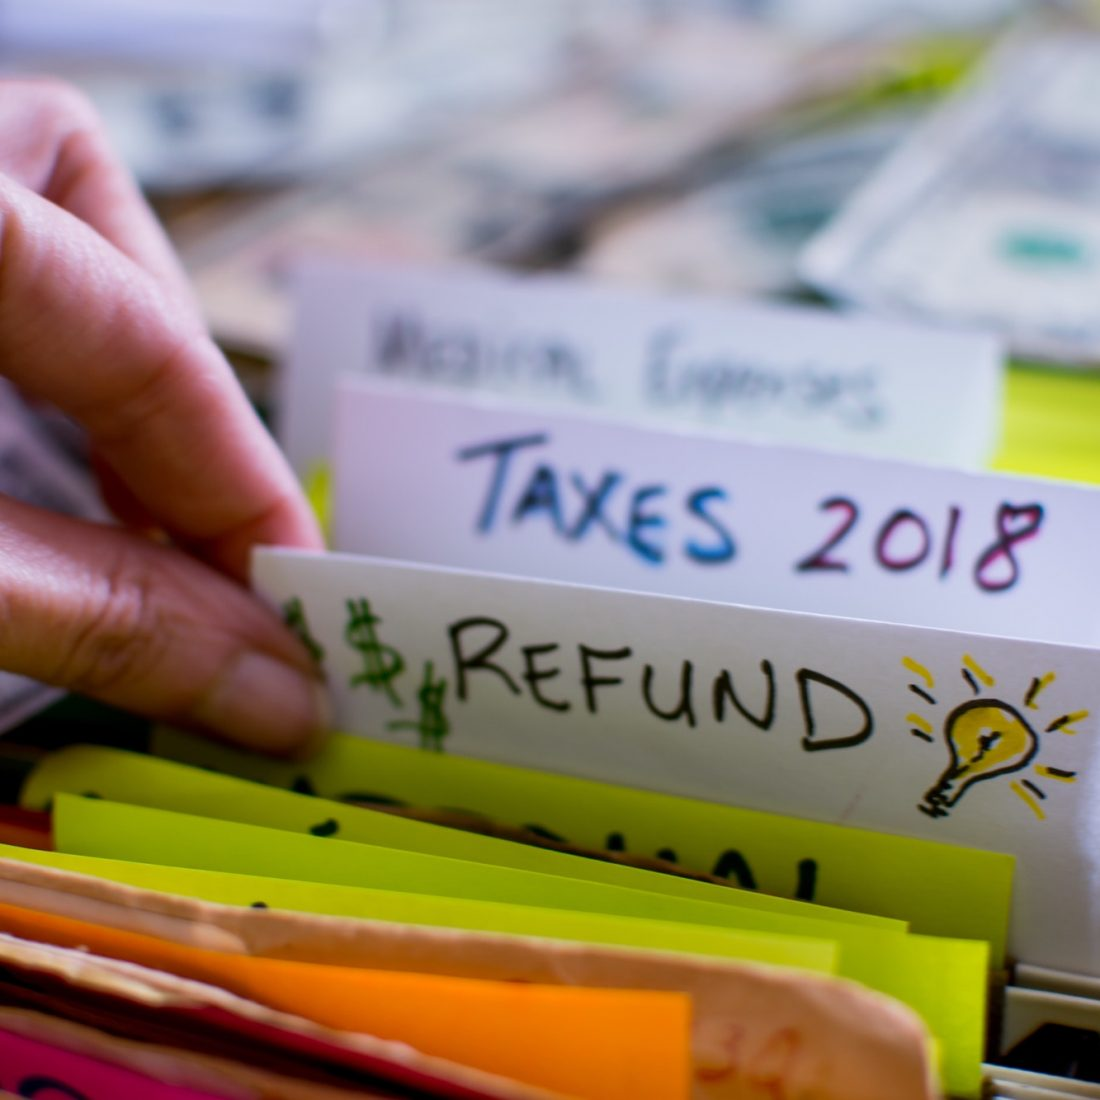 Preparing taxes 2018 tax refund ideas conceptual income tax return photography tax words and ideas